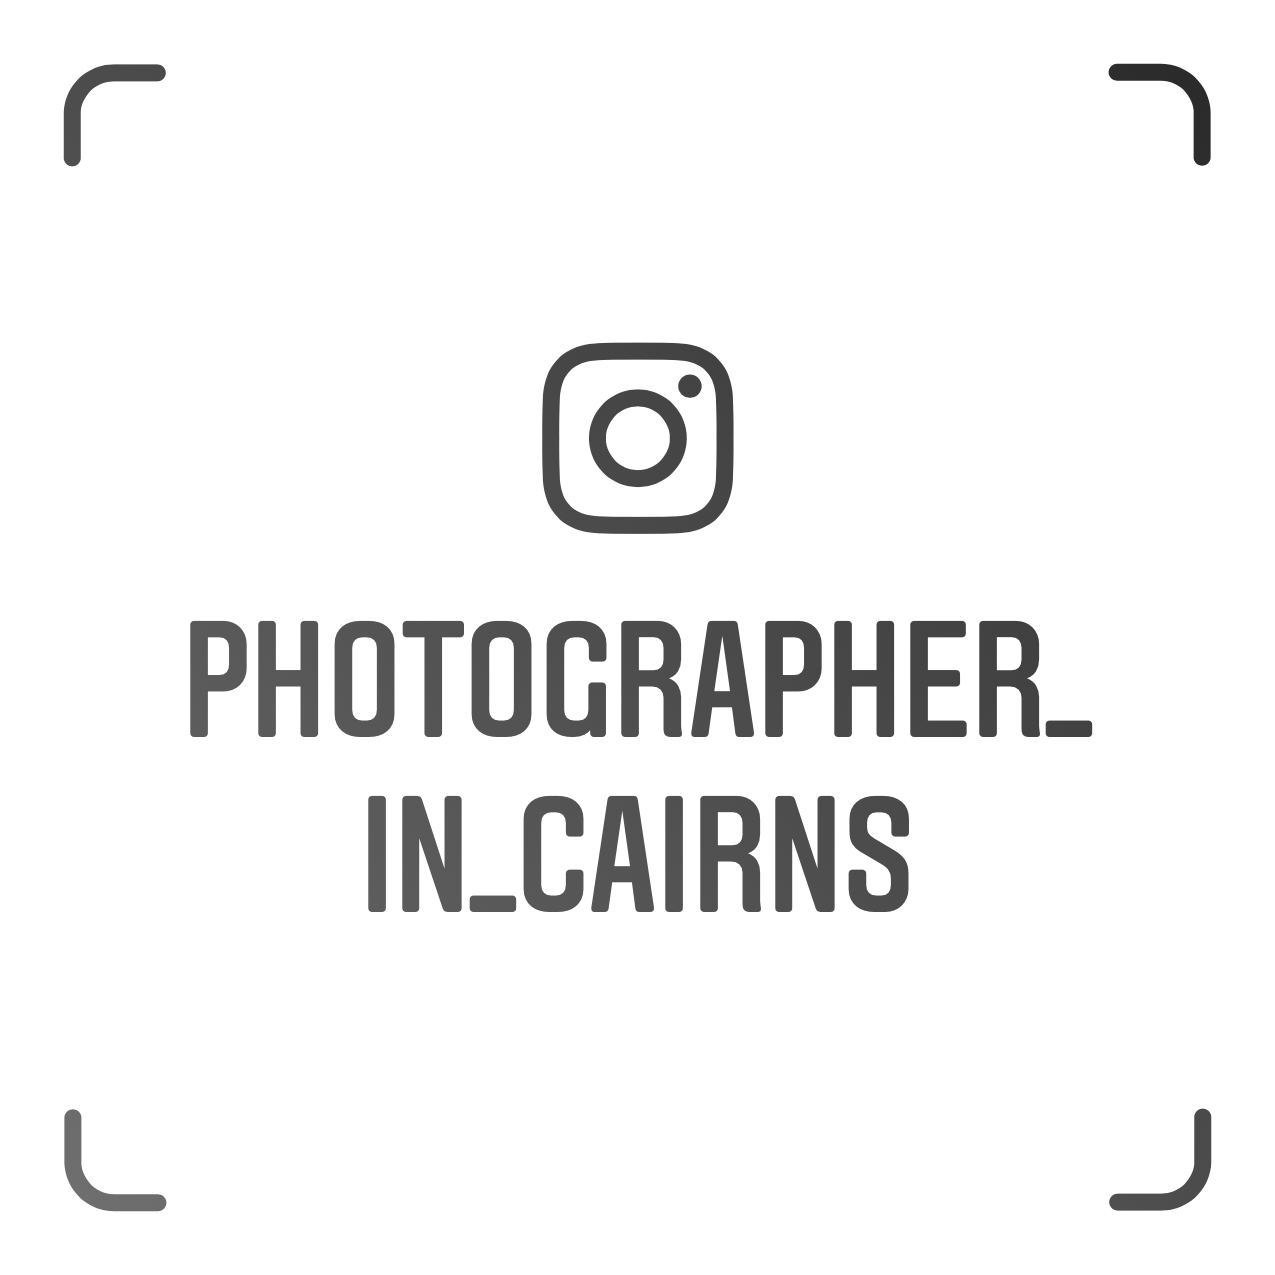 photographer_in_cairns_nametag.png